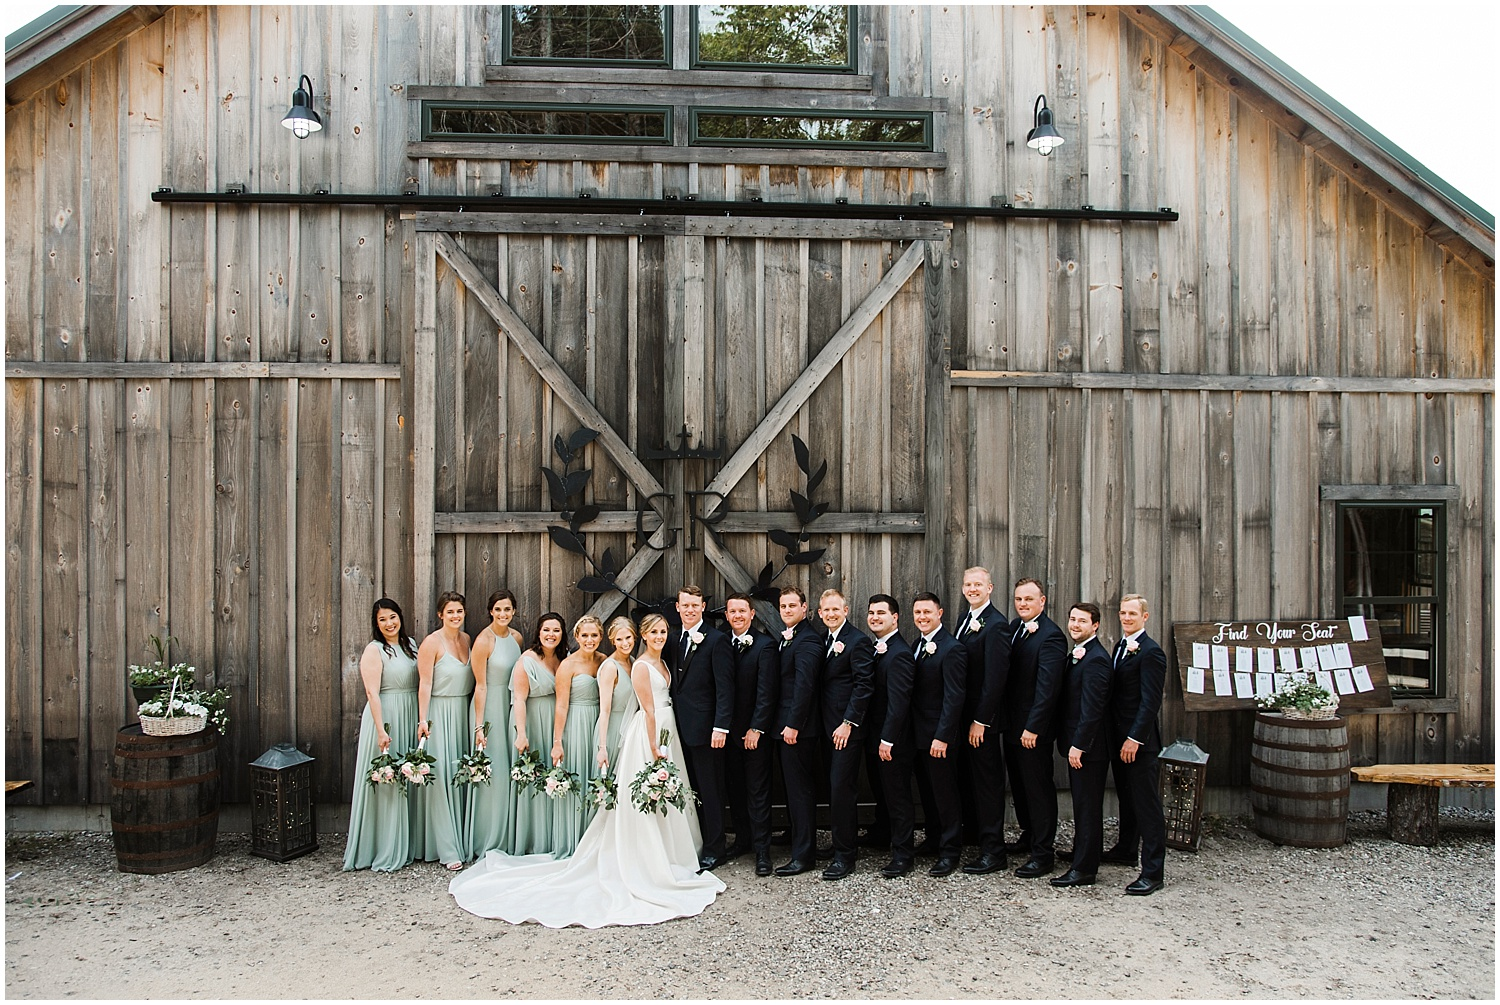 Apollo_Fields_Granite_Ridge_Estate_And_Barn_Wedding_011.jpg